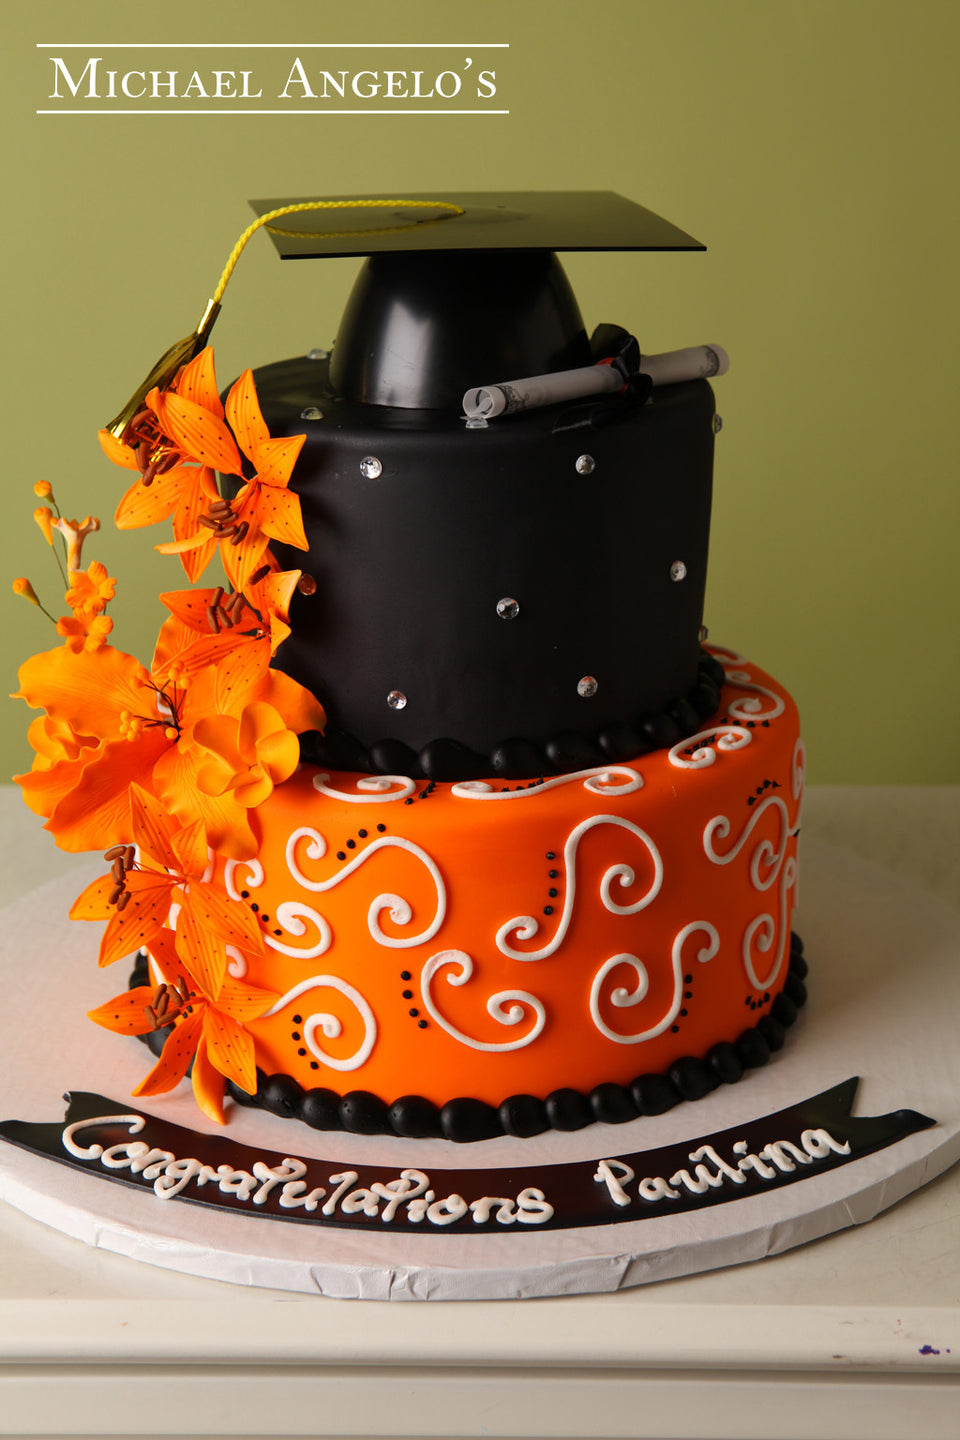 Graduation Cakes Michael Angelos Bakery